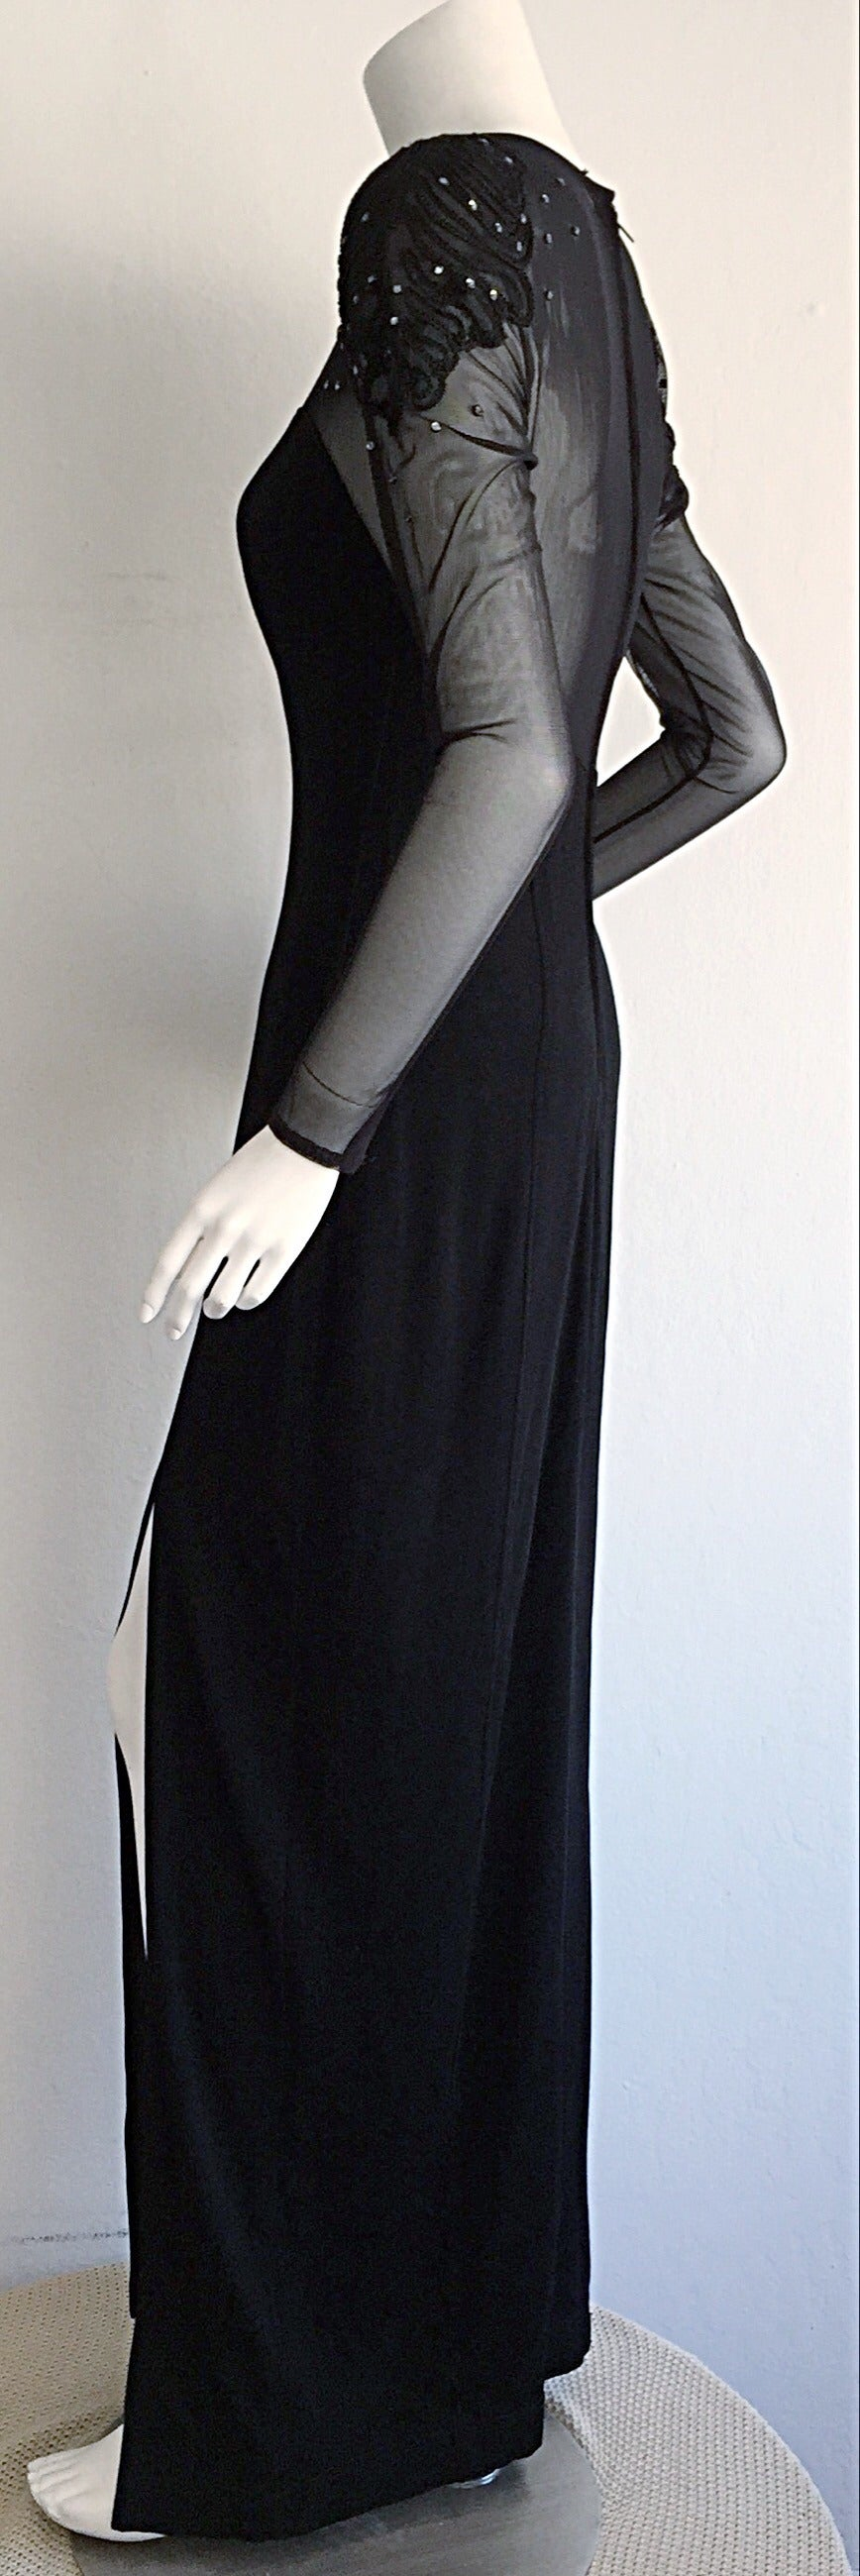 Sexy Vintage 1990s Black Cut - Out Bodycon Dress w/ Rhinestones For Sale 3